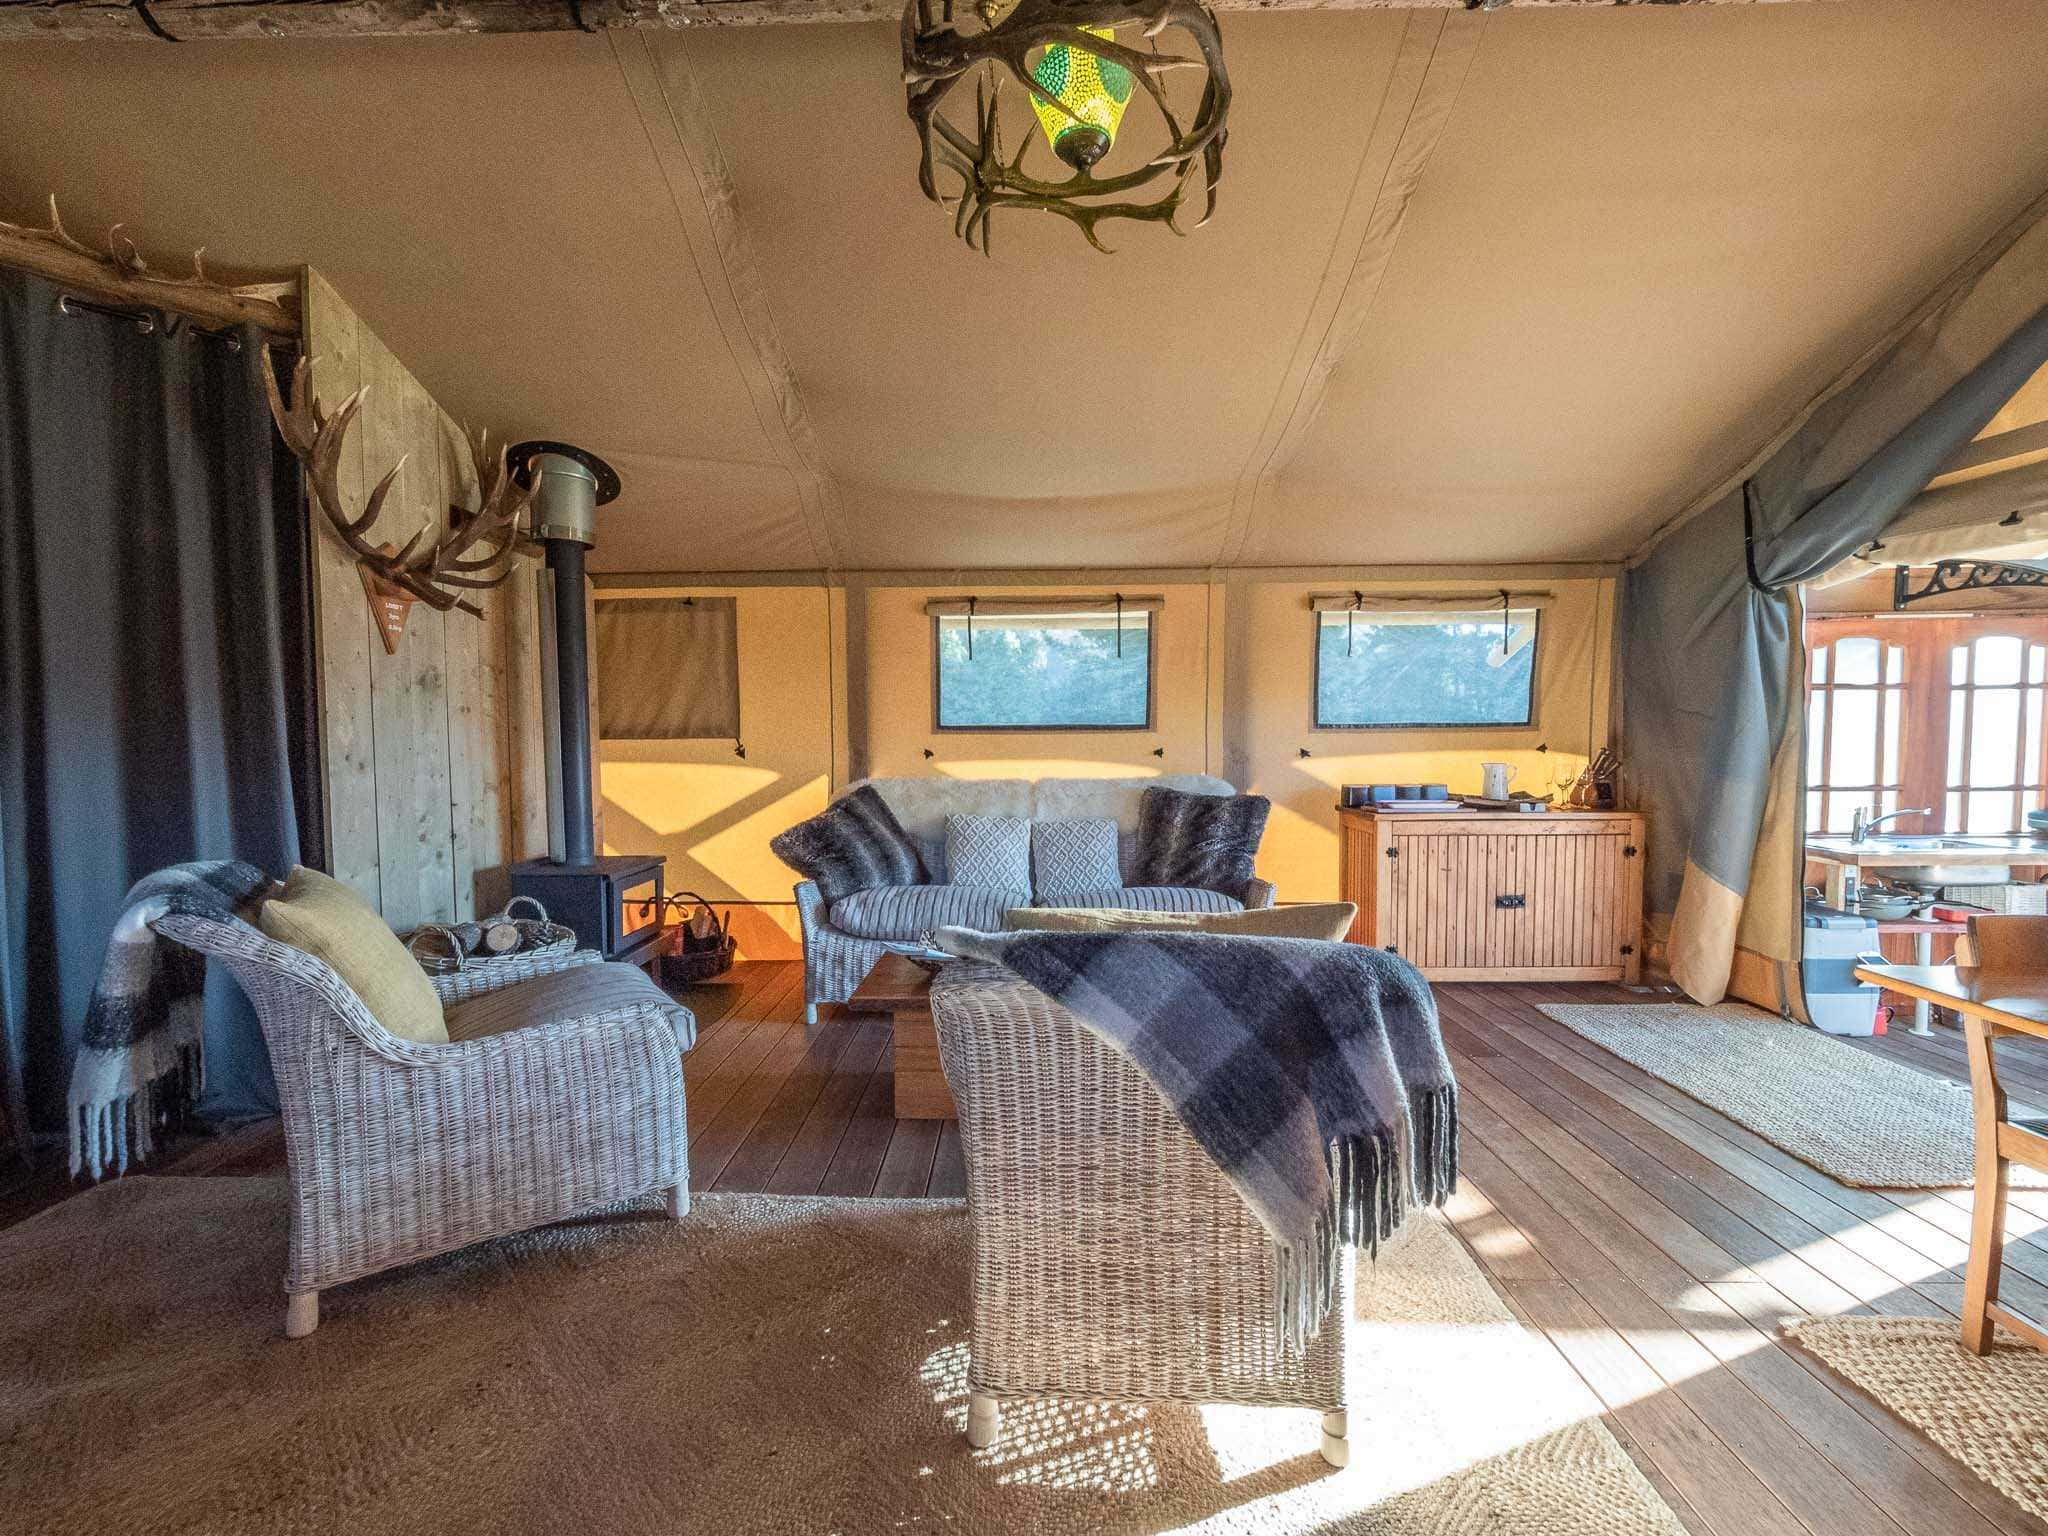 glamping nz, glamping new zealand, camping nz, camping new zealand, canopy camping escapes, canopy camping nz, green antler, green antler glamping, deer farm nz, accommodation christchurch, accommodation banks peninsula, banks peninsula, akaroa